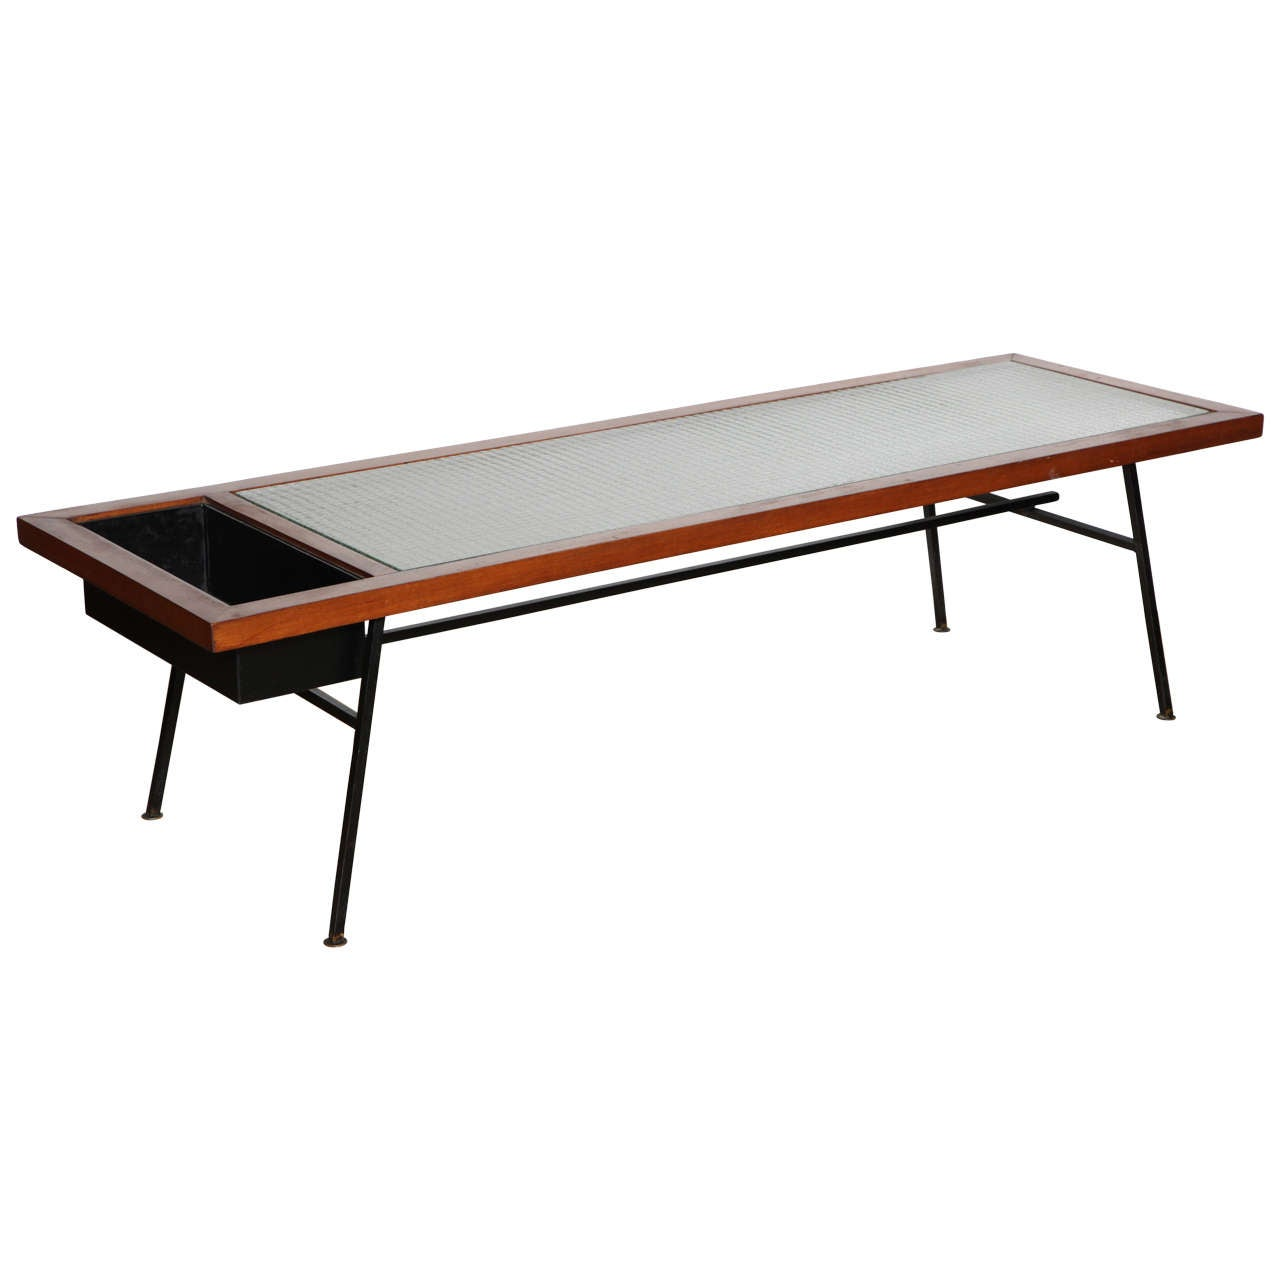 Early Cal Vista California Modern Planter Coffee Table At 1stdibs # Muebles California